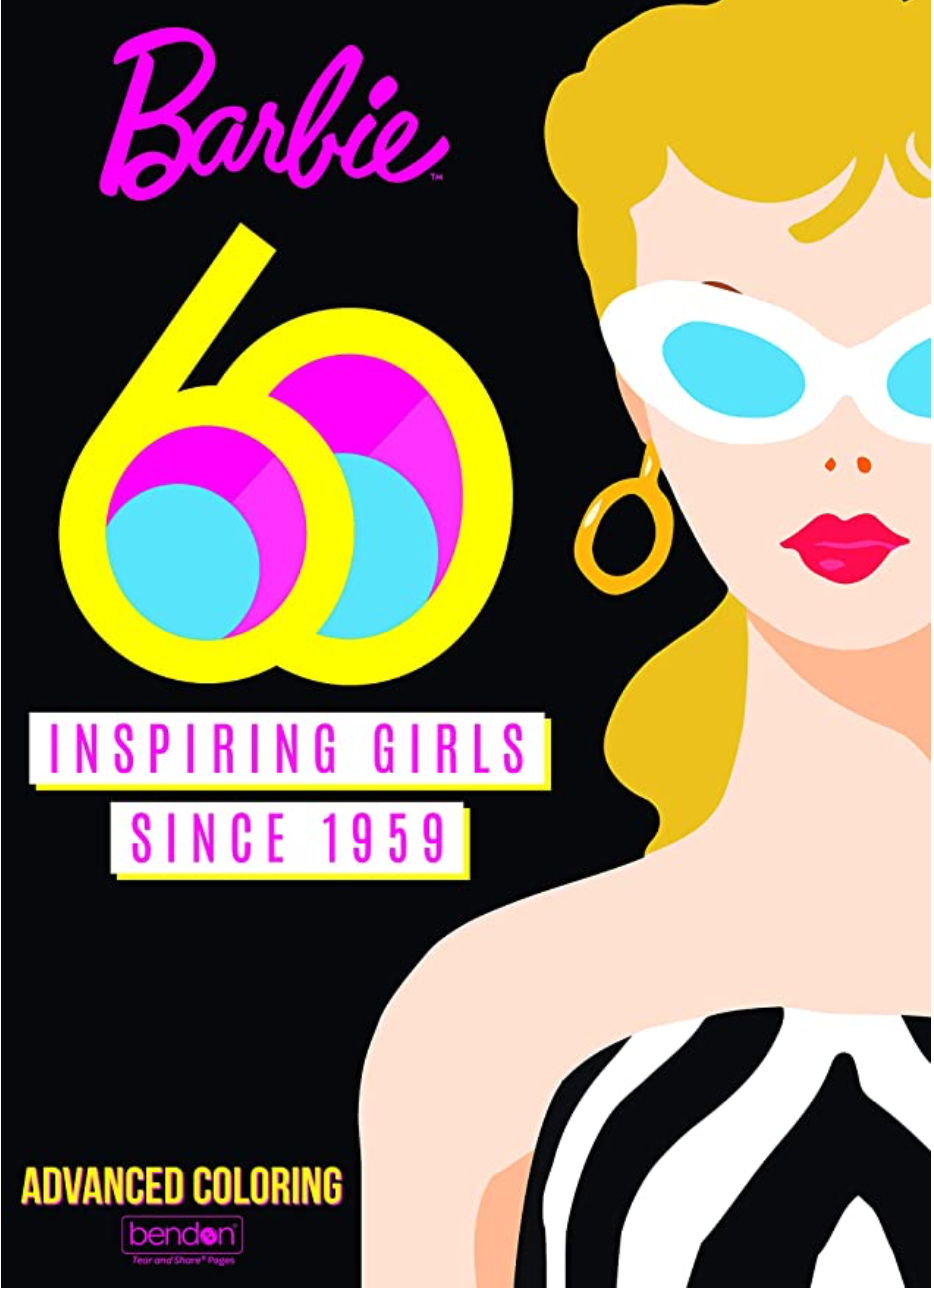 Barbie 60th Inspiring Girls Since 1959 Coloring Book with illustration of Barbie on the cover